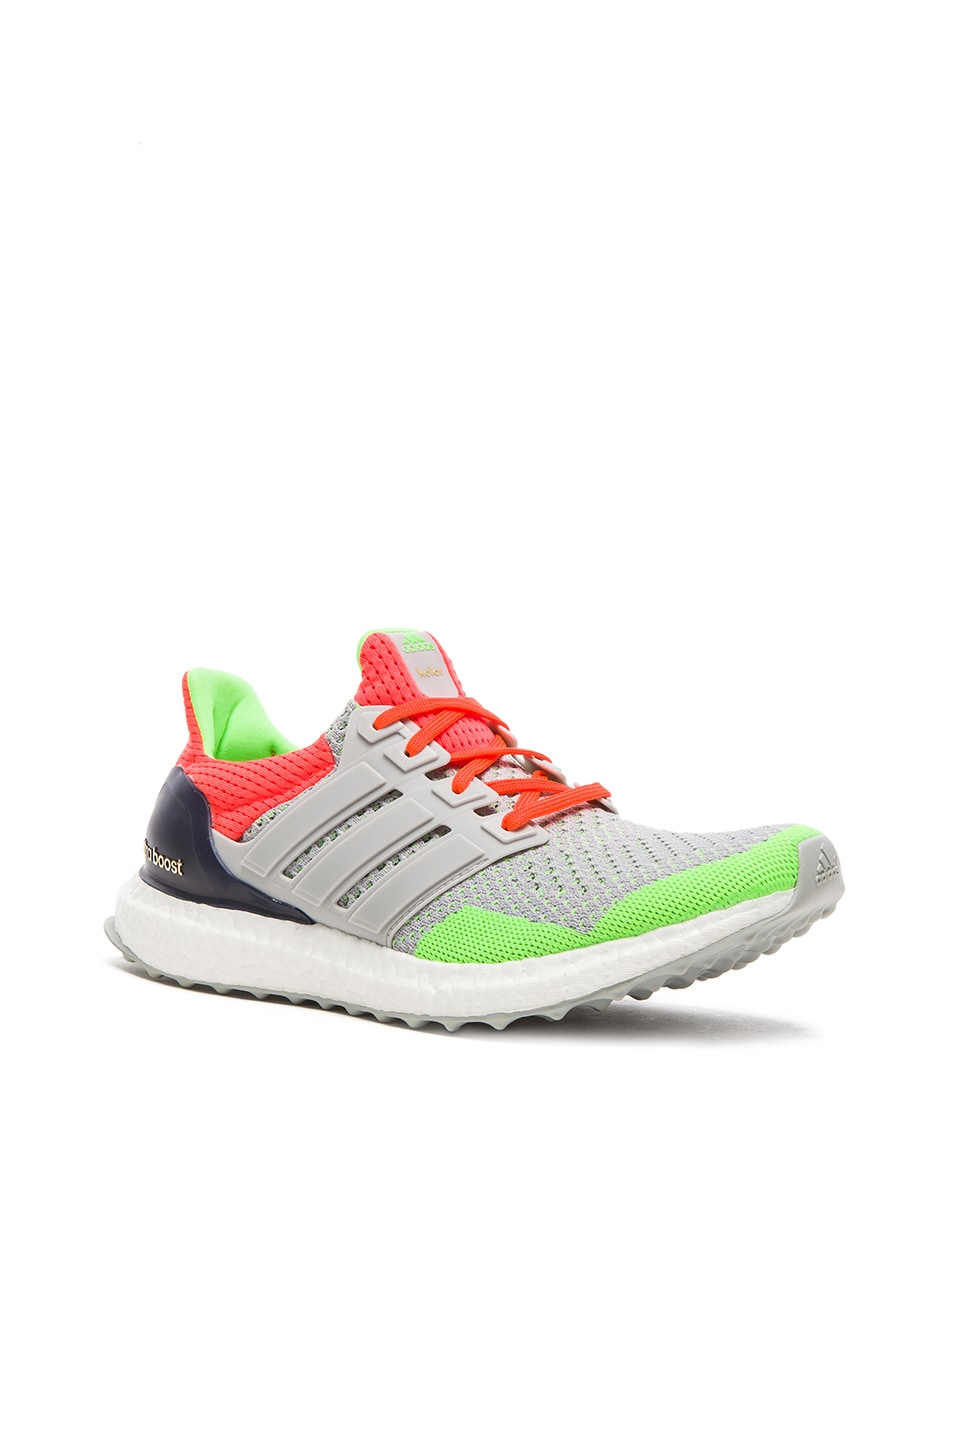 4addd4ef8952b Image 1 of Adidas x kolor Ultra Boost Shoes in Light Grey   Solar Orange